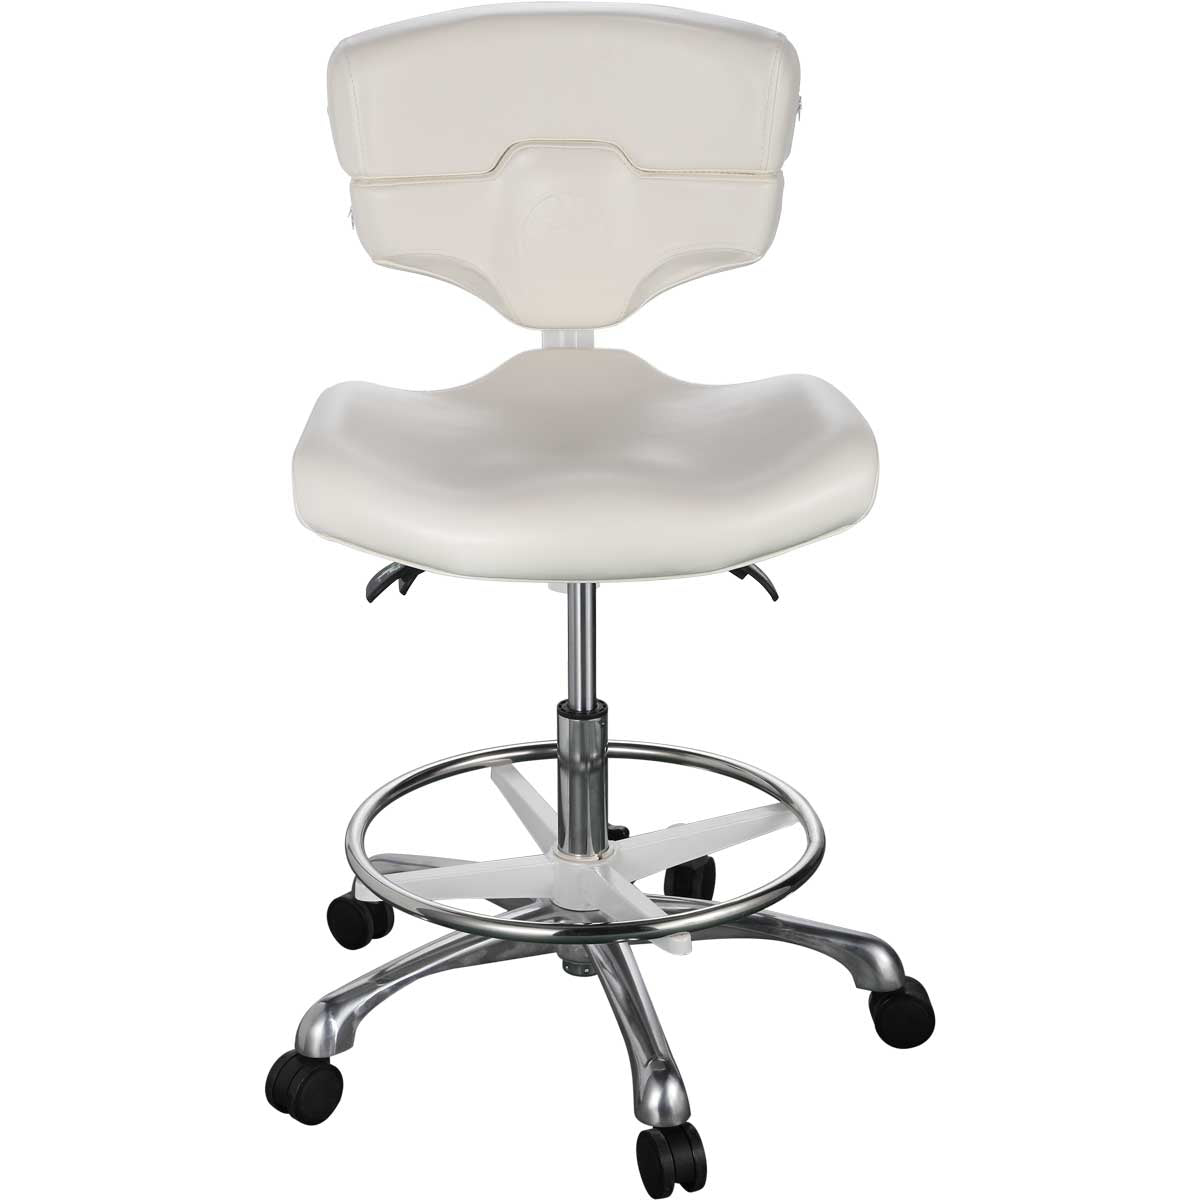 Luxe Provider Chair